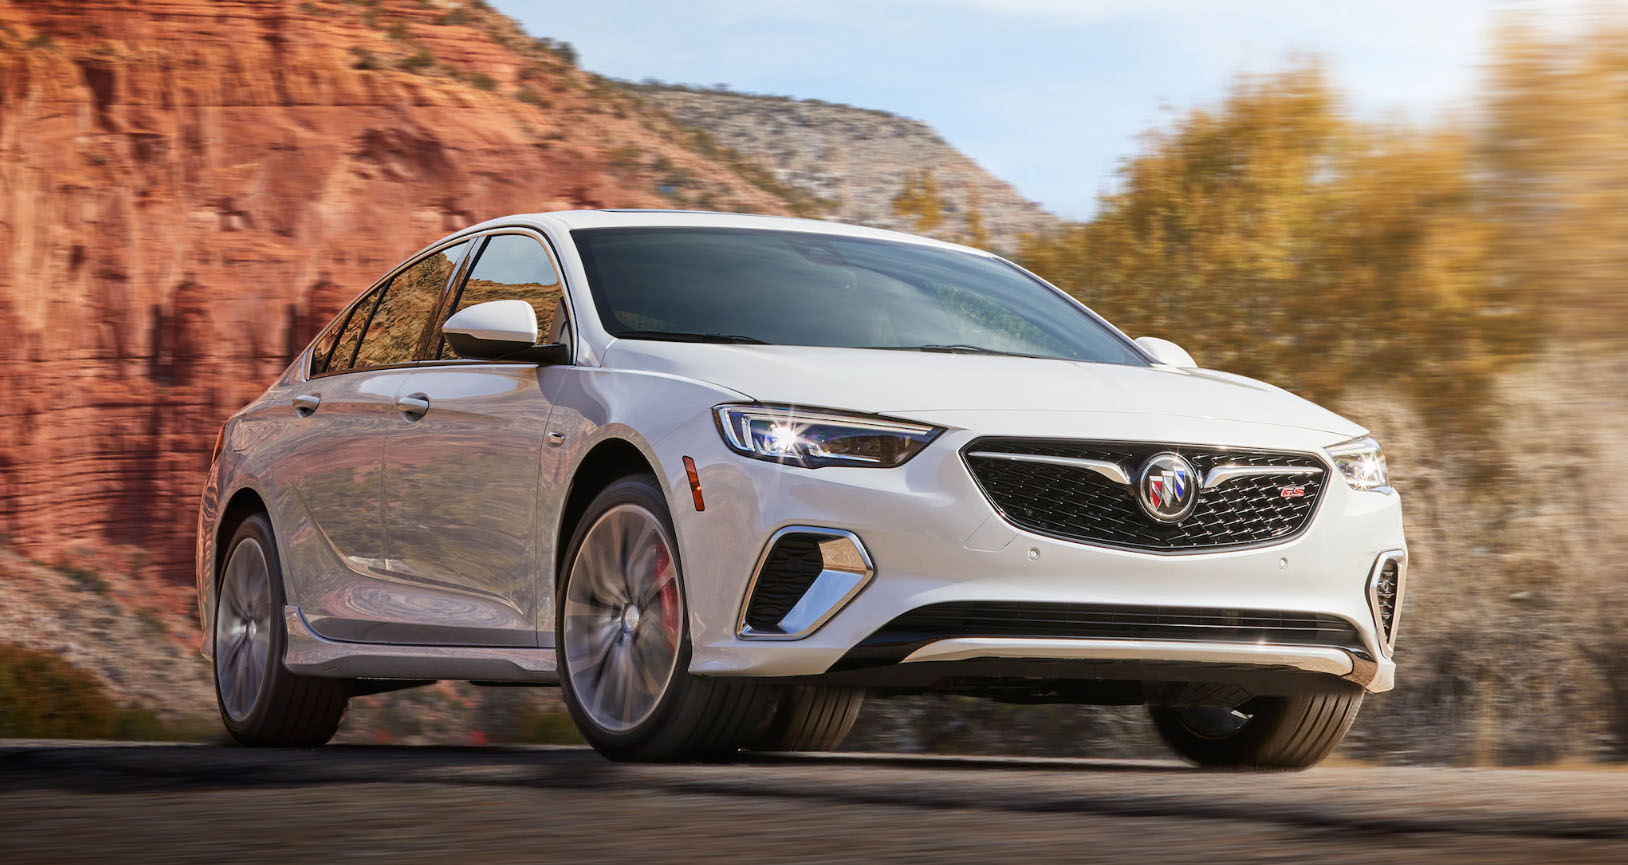 2020 Buick Regal GS Appearance Main Img